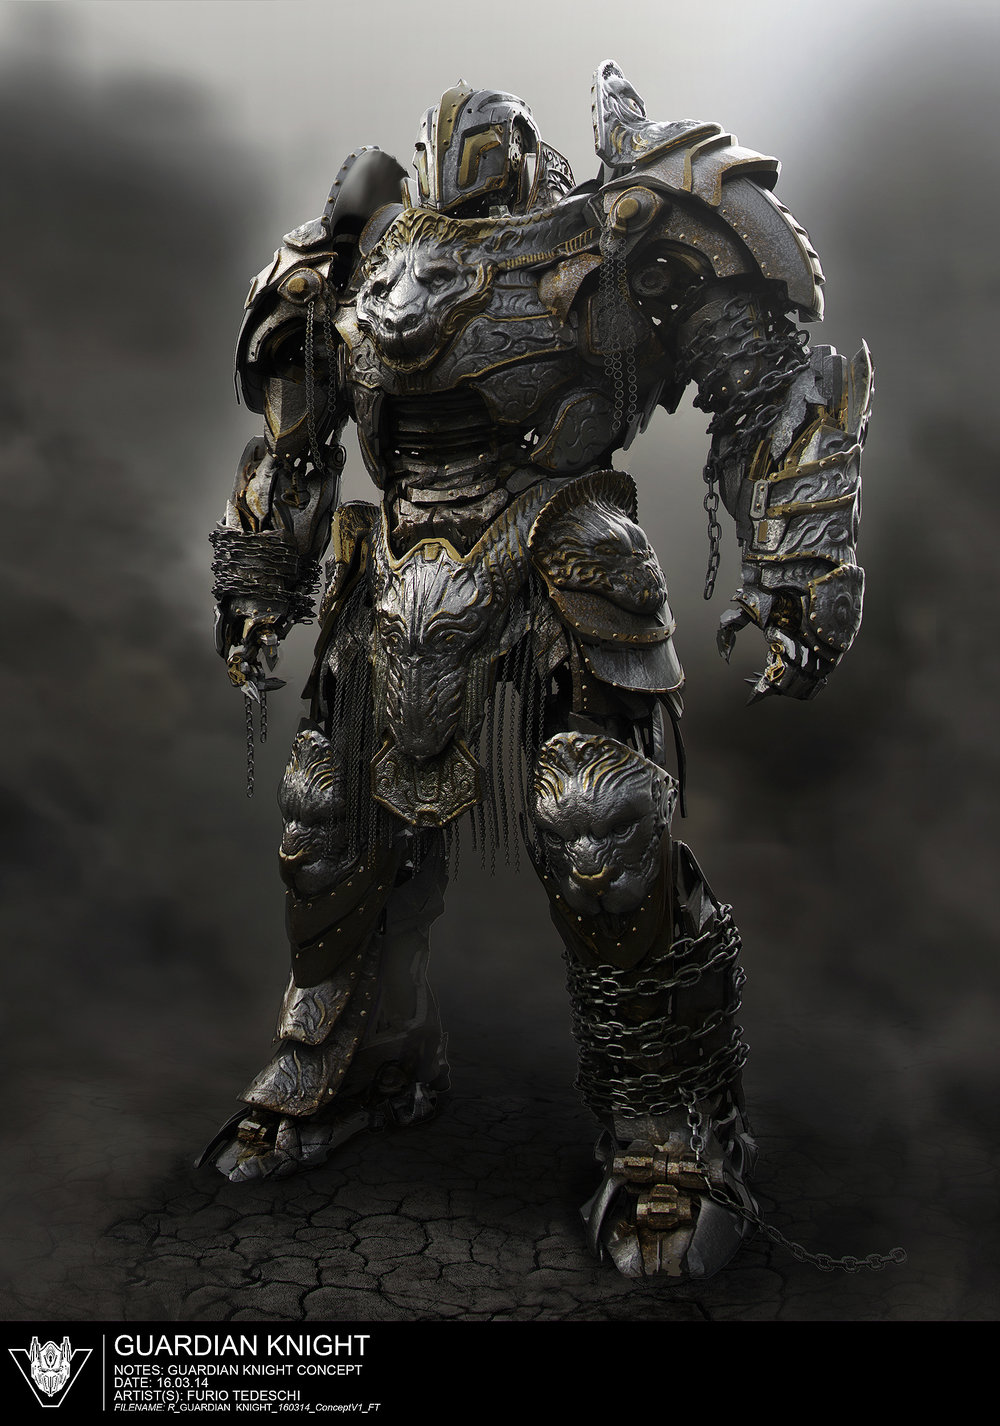 R_GUARDIAN  KNIGHT_160314_ConceptV1_FT.jpg